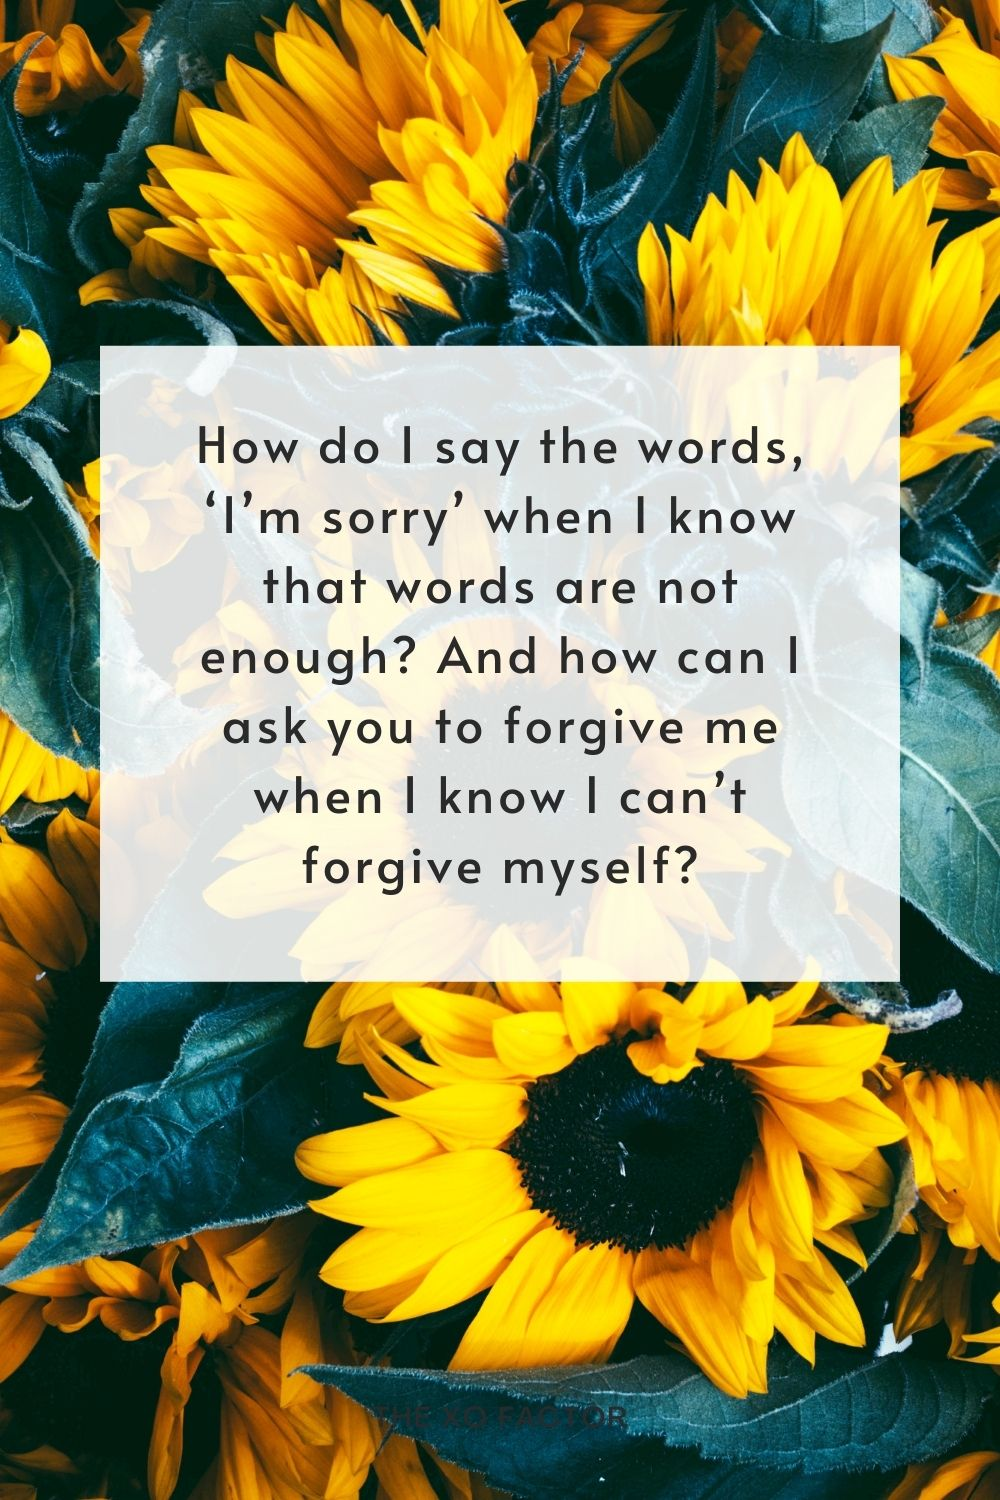 How do I say the words, 'I'm sorry' when I know that words are not enough? And how can I ask you to forgive me when I know I can't forgive myself?